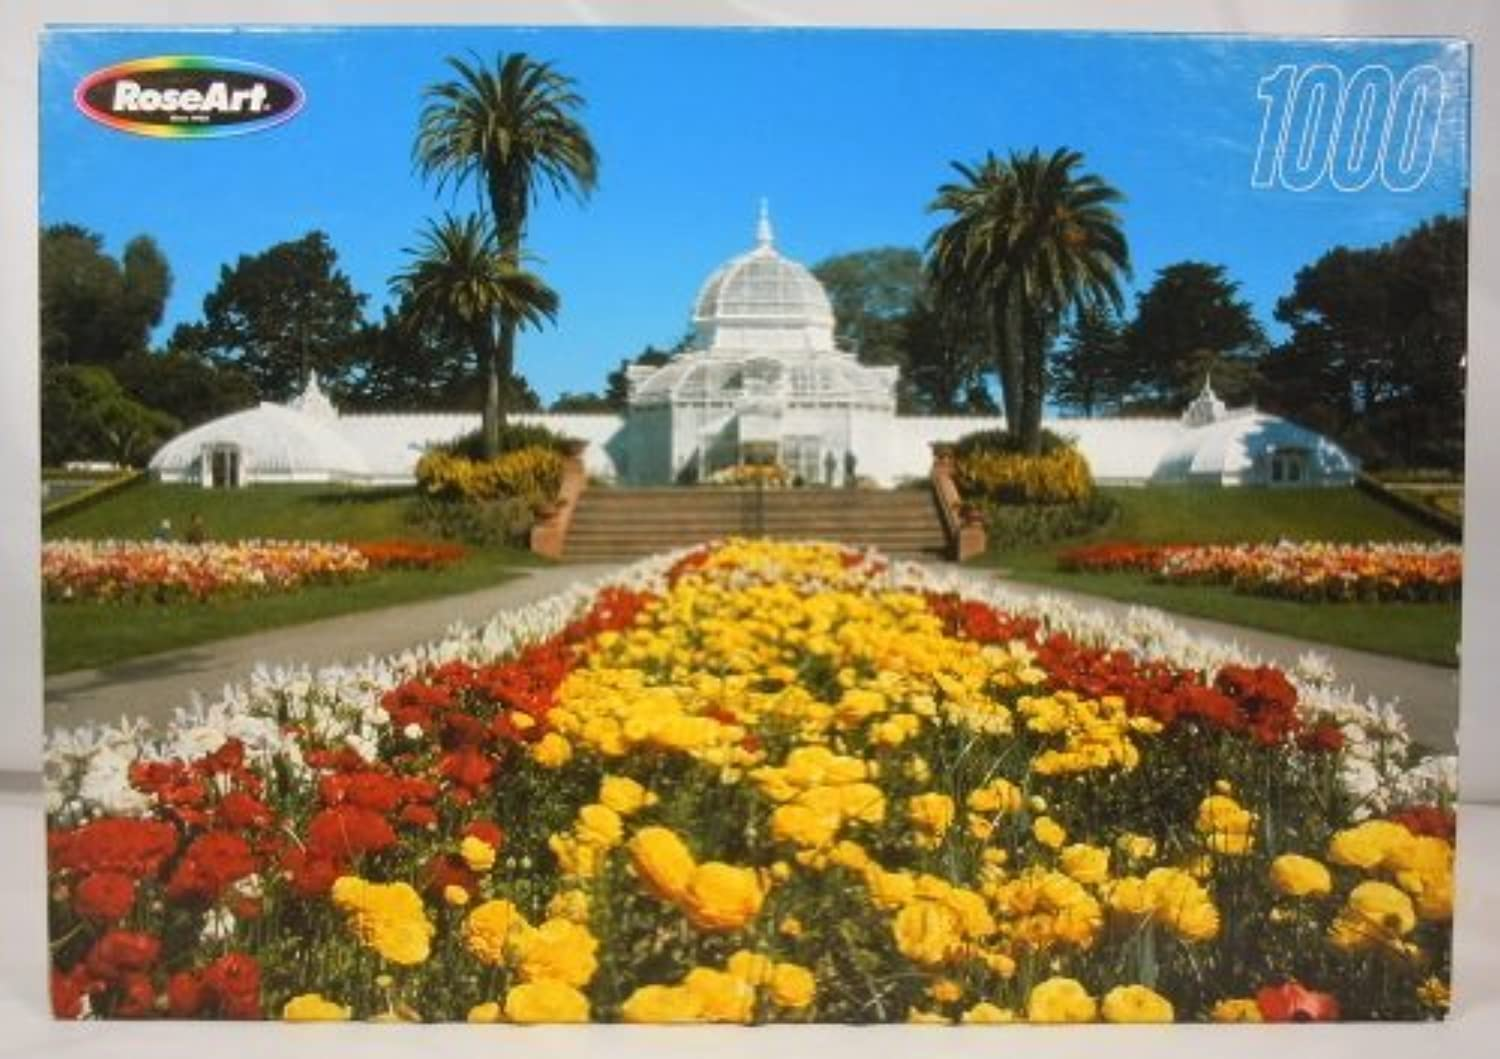 pinkart Jigsaw Puzzle  golden Gate Park  1000 Pieces by Warren Industries